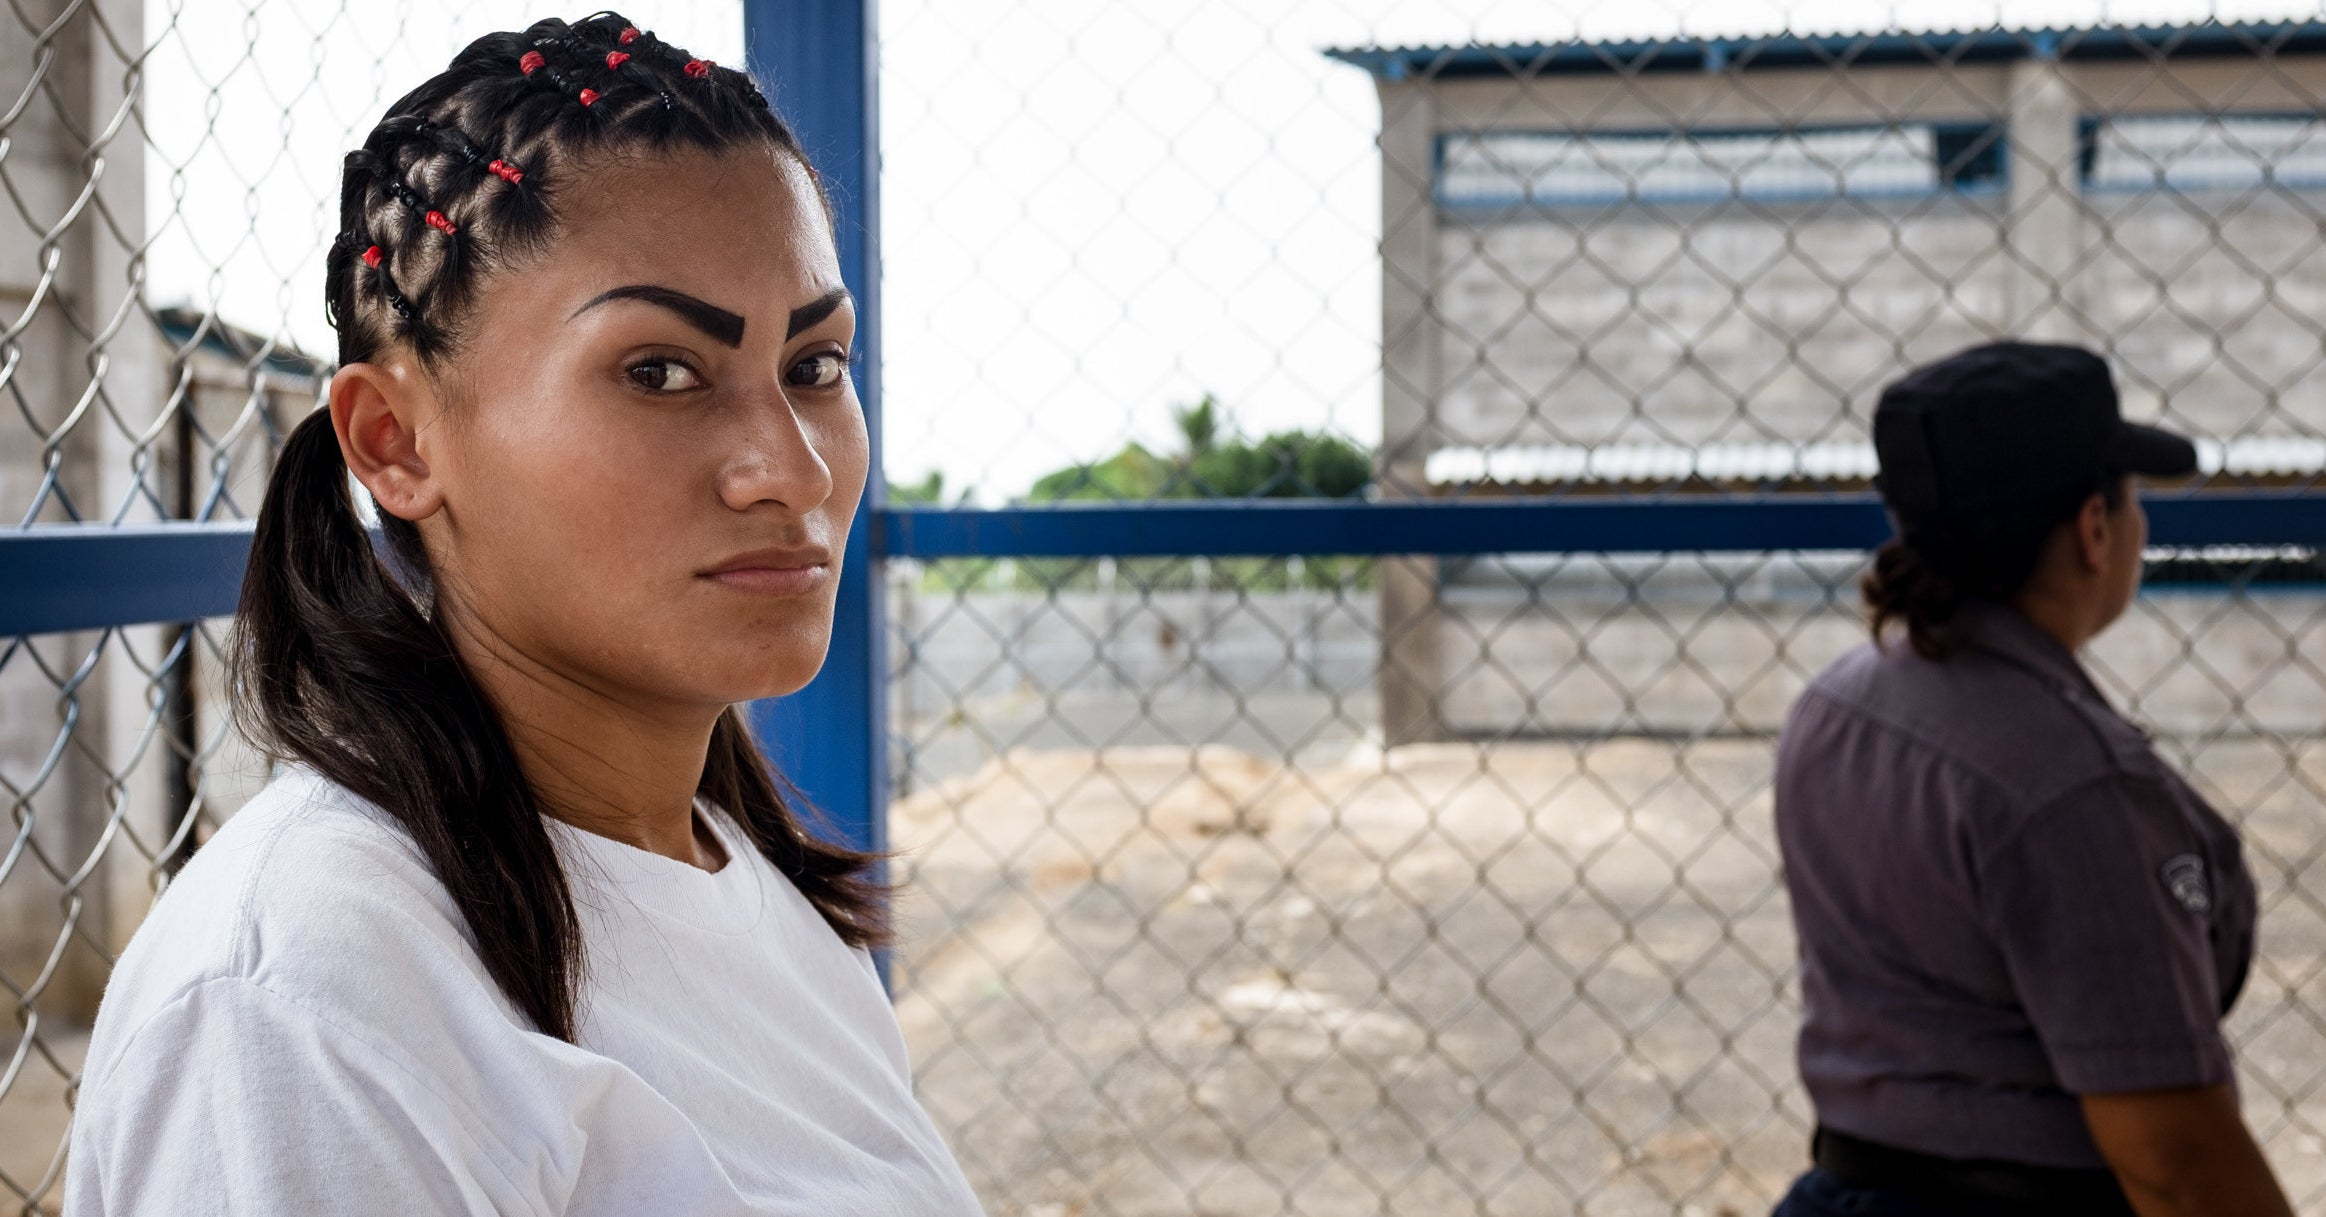 Evelyn Hernández Isn't Alone — These Women Share Her Story Of Pregnancy, Trauma, And Jail Time